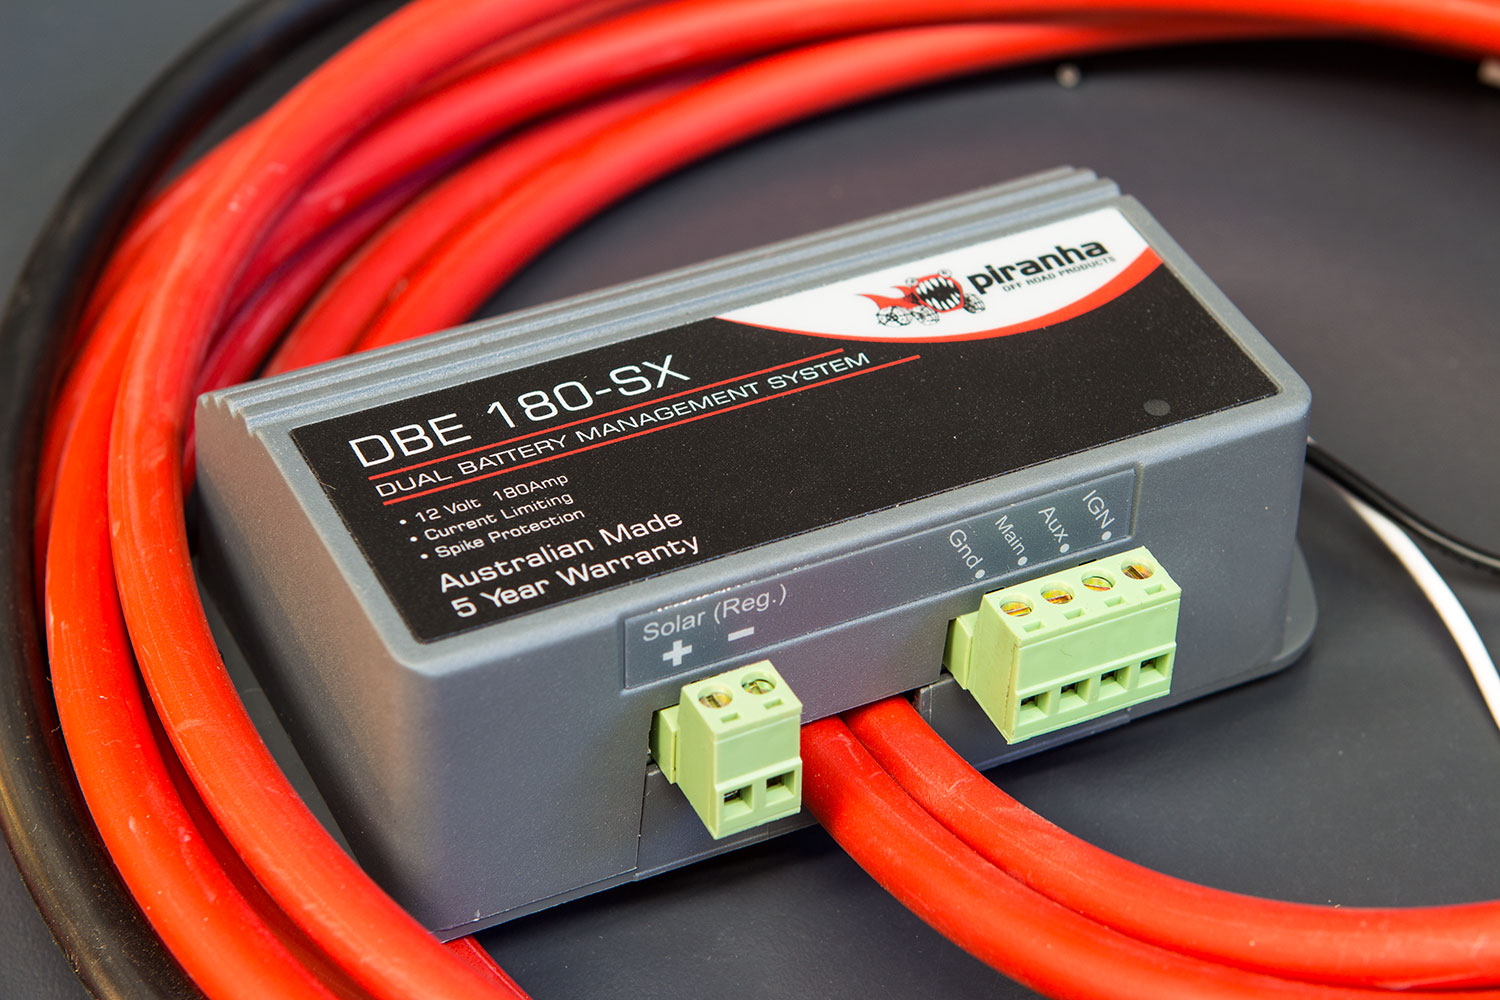 Piranha Offroad Dual Battery Management System - DBE180-SX - With Cables Showing